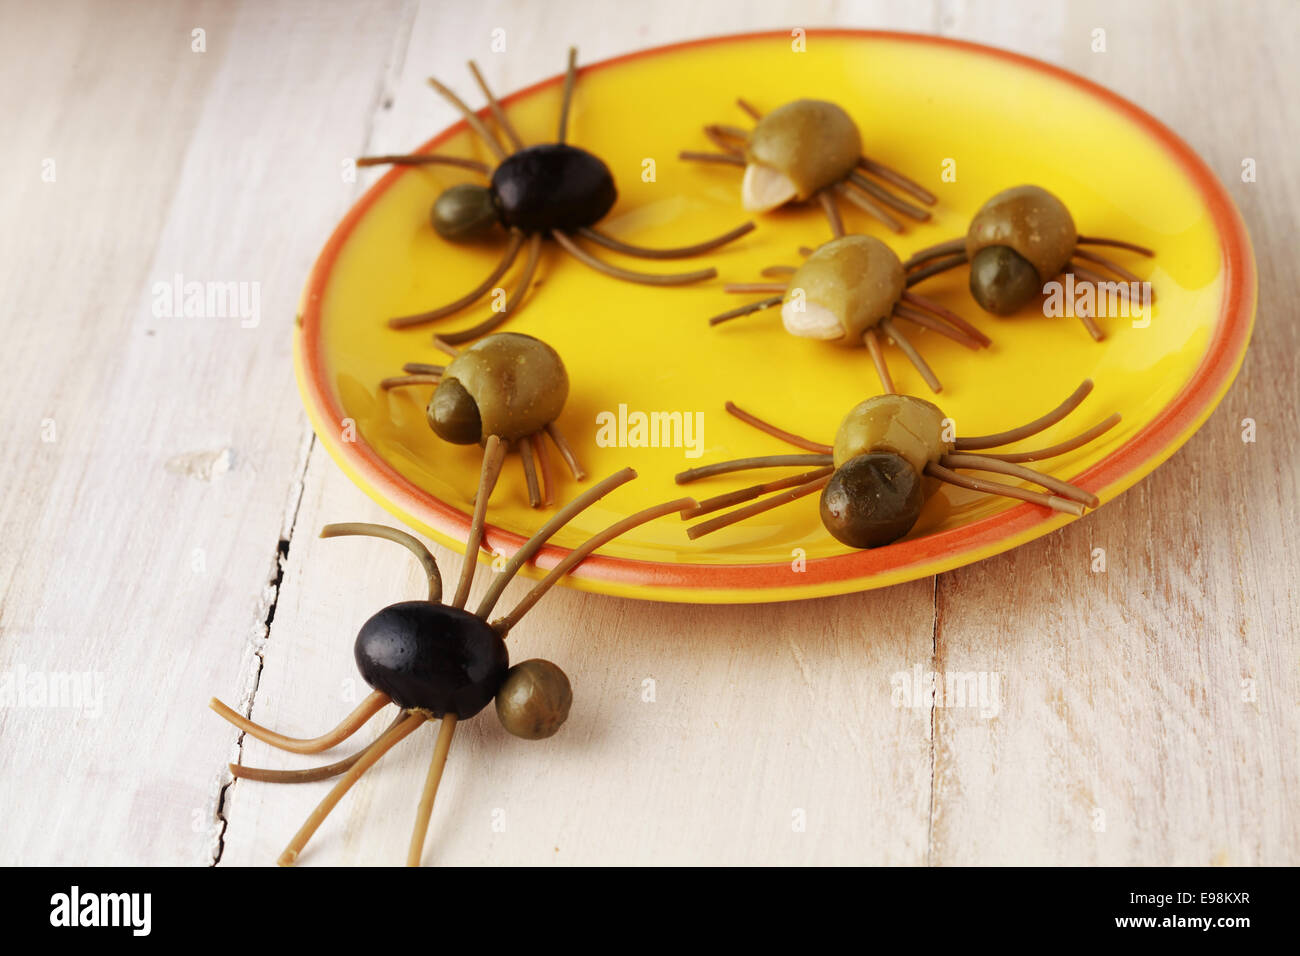 Creepy crawly Halloween spider snacks for a party celebration made from black and green olives with Italian spaghetti - Stock Image